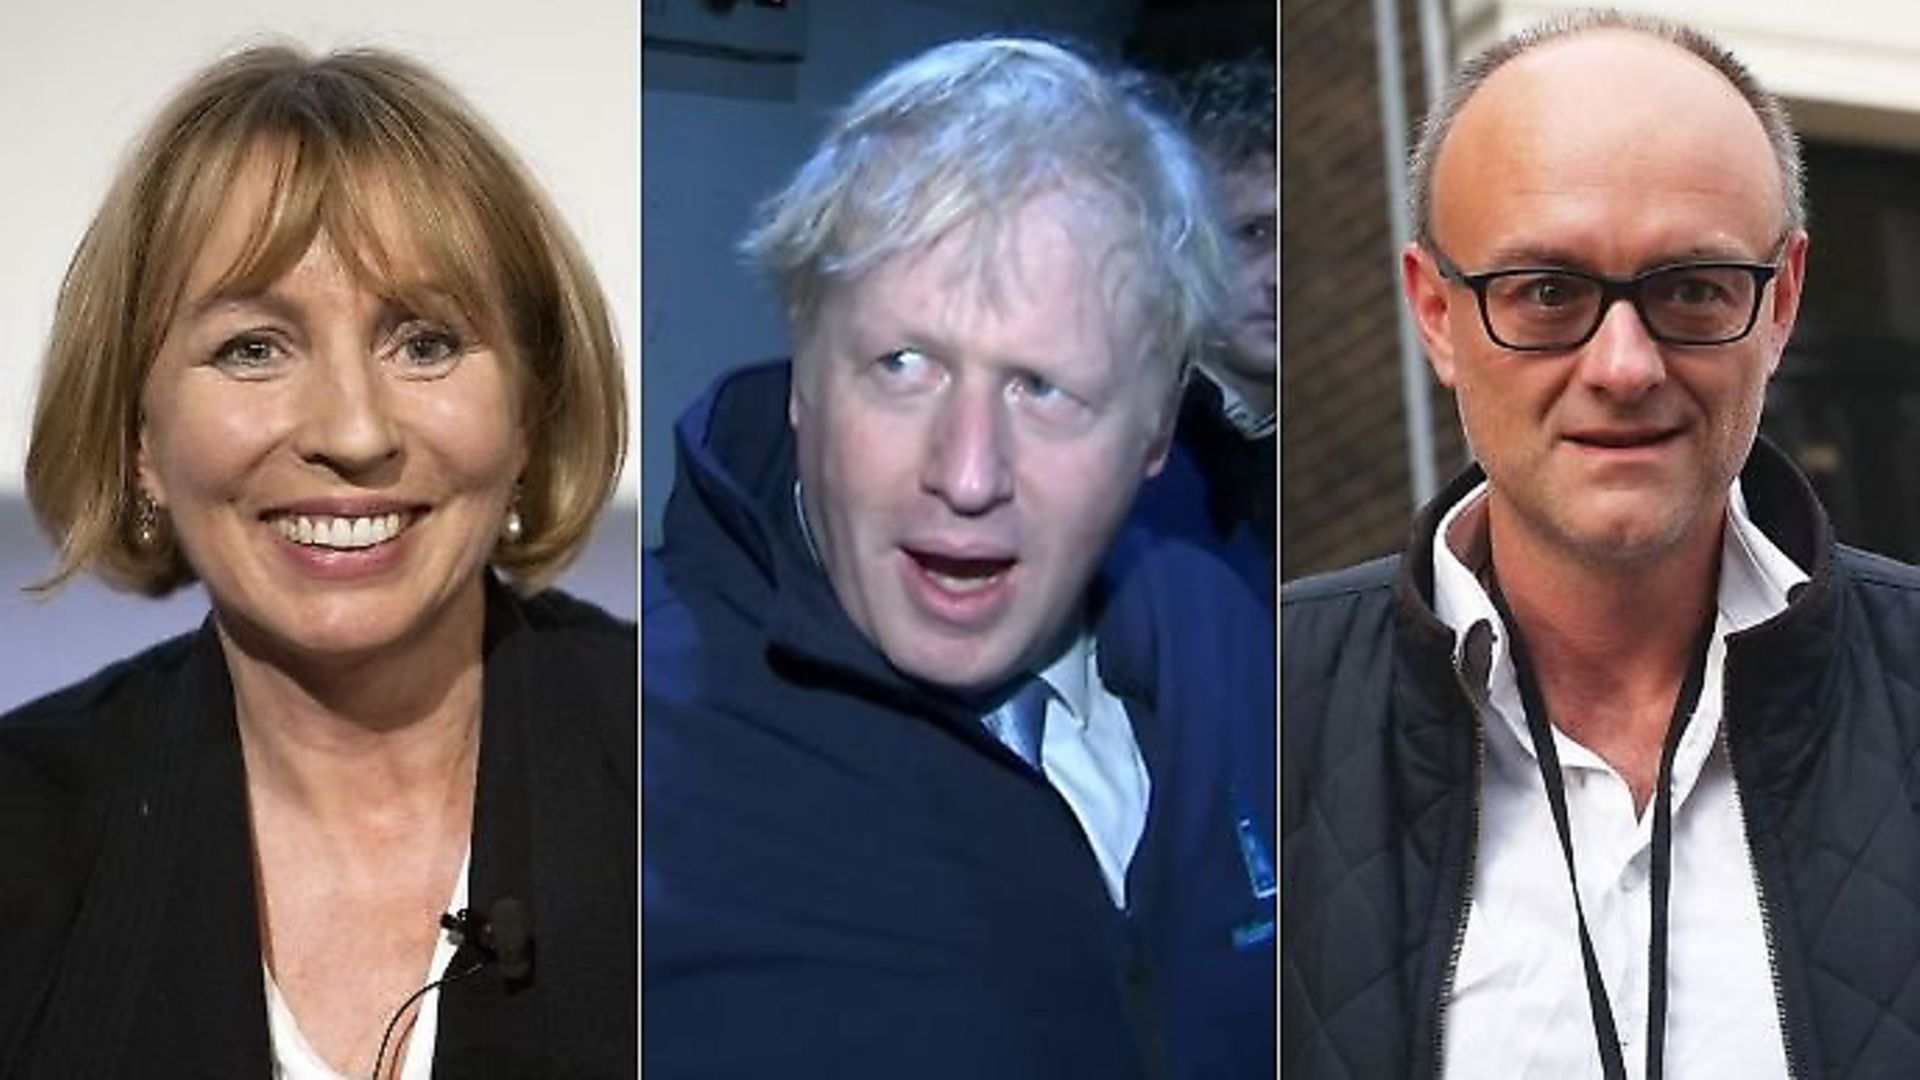 Sarah Sands, Boris Johnson and Dominic Cummings all feature in this week's Mandrake. Photograph: TNE. - Credit: Archant